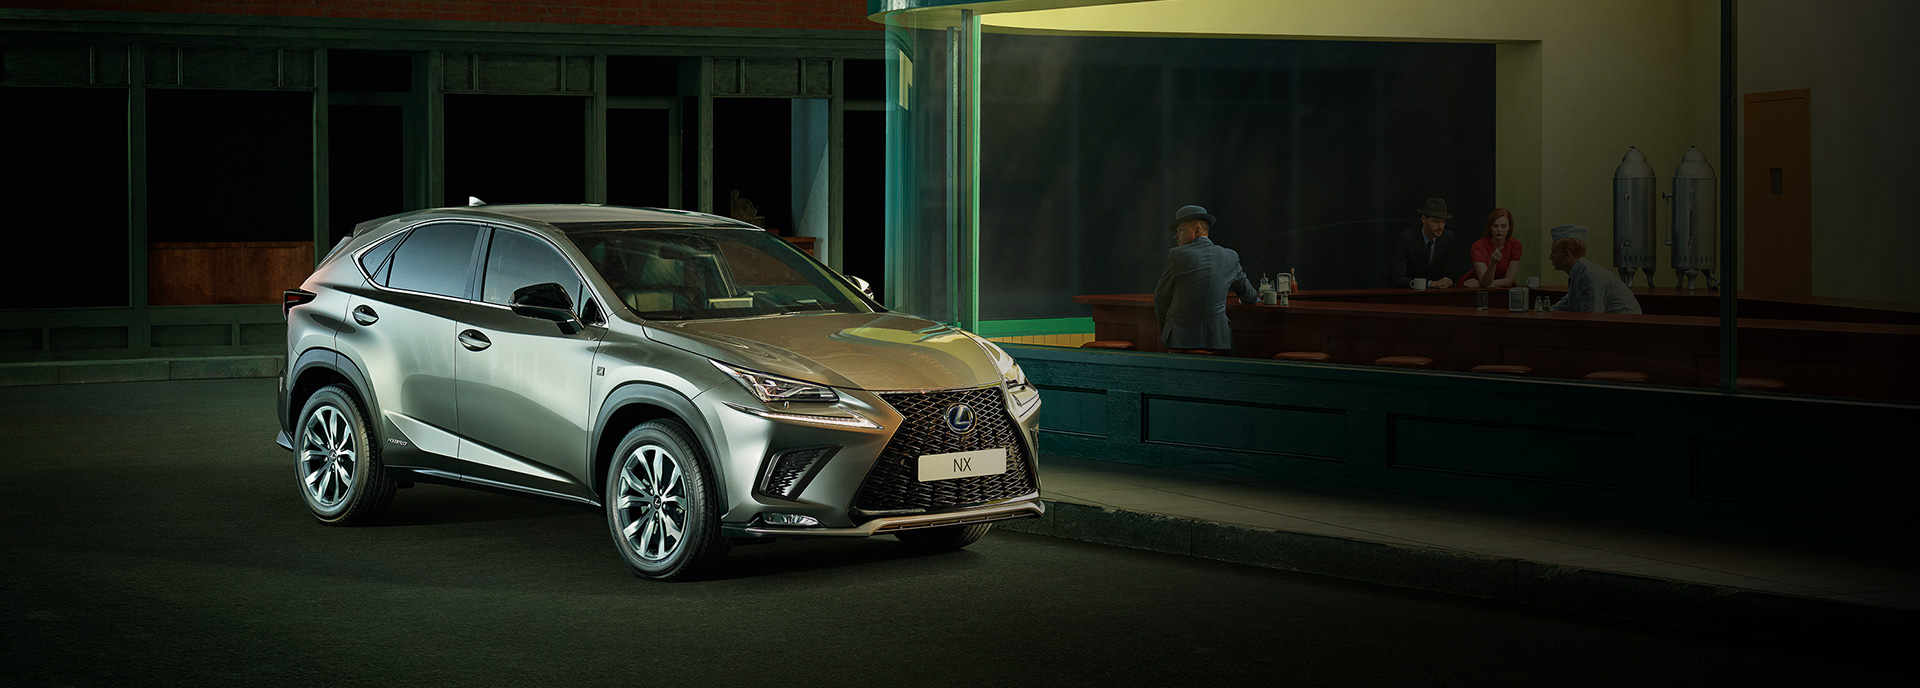 2018 lexus nx 300 campaign local hero